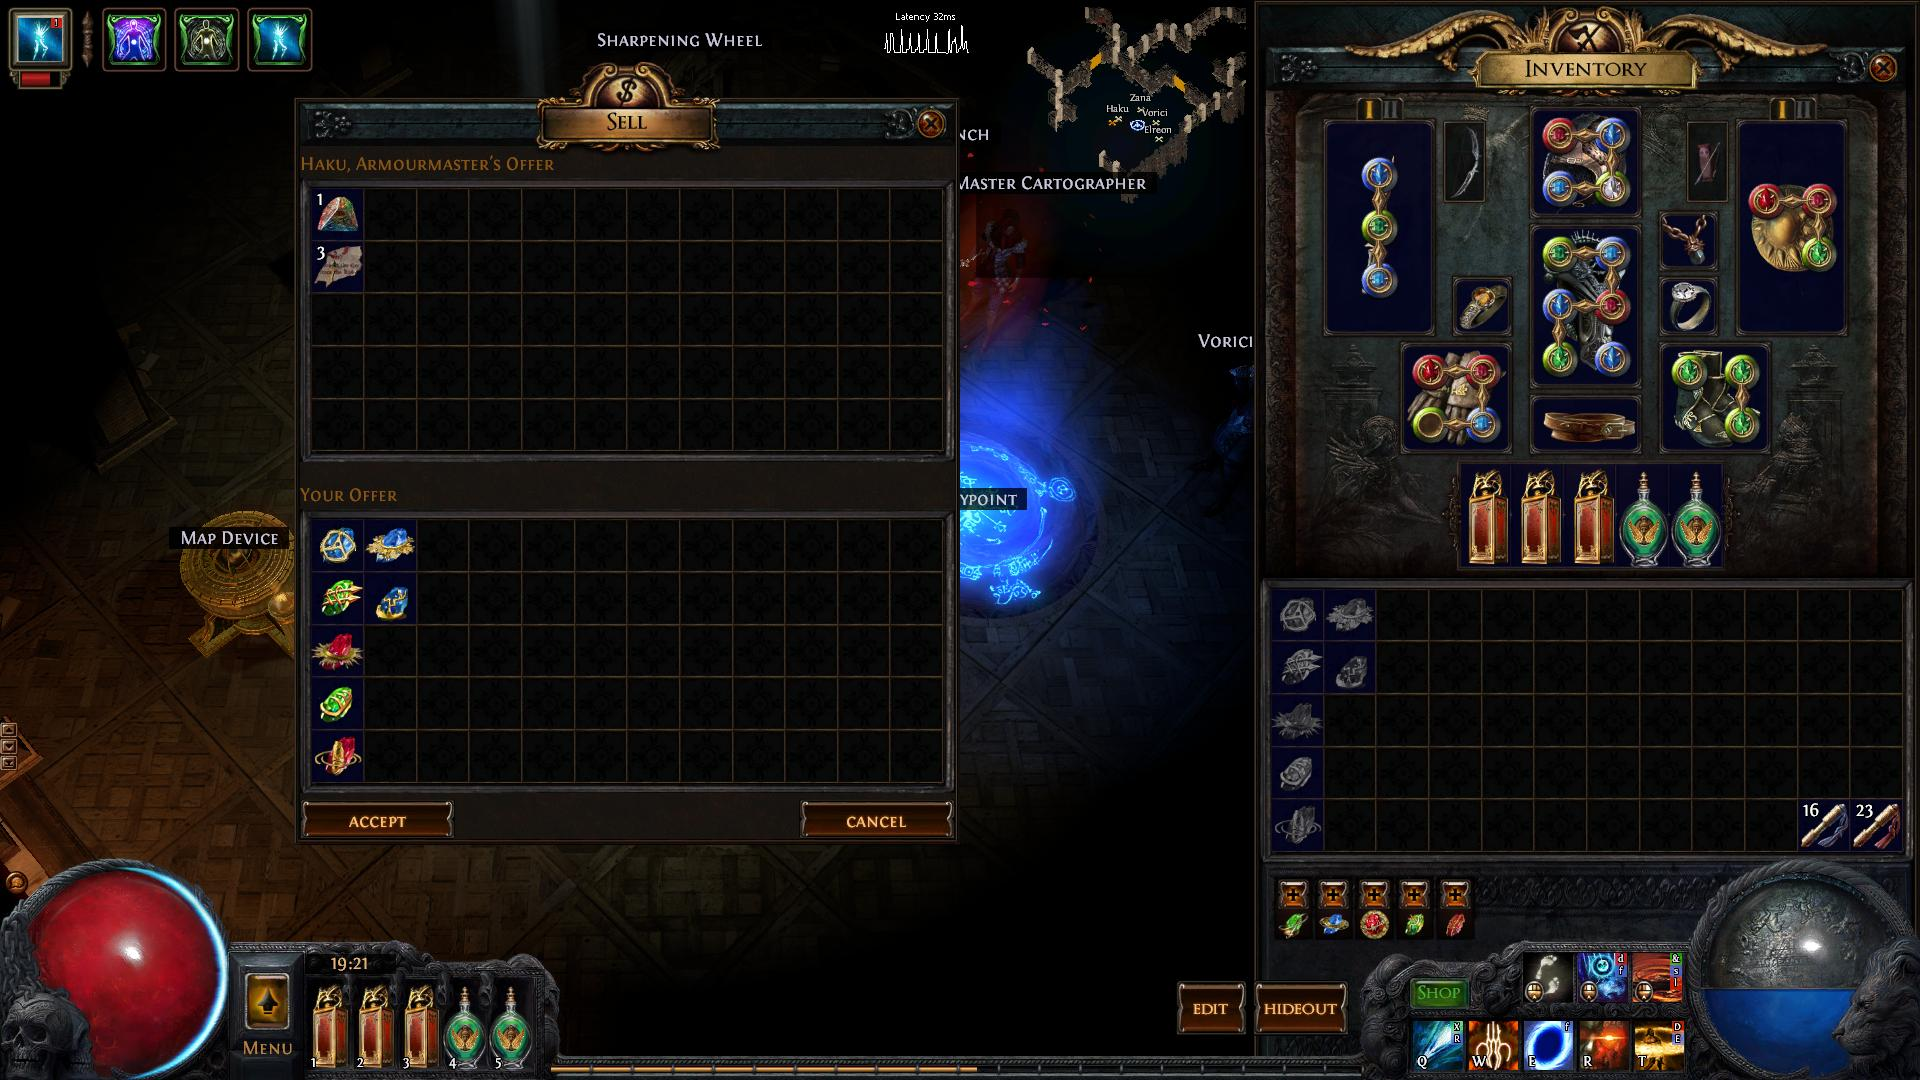 Path Of Exile Earn Currency As A Beginner Simple Guide Path Of Exile Guide Wiki Fan Site Enlighten is a support gem that used to decrease the amount of mana reservation of linked skill. path of exile guide wiki fan site